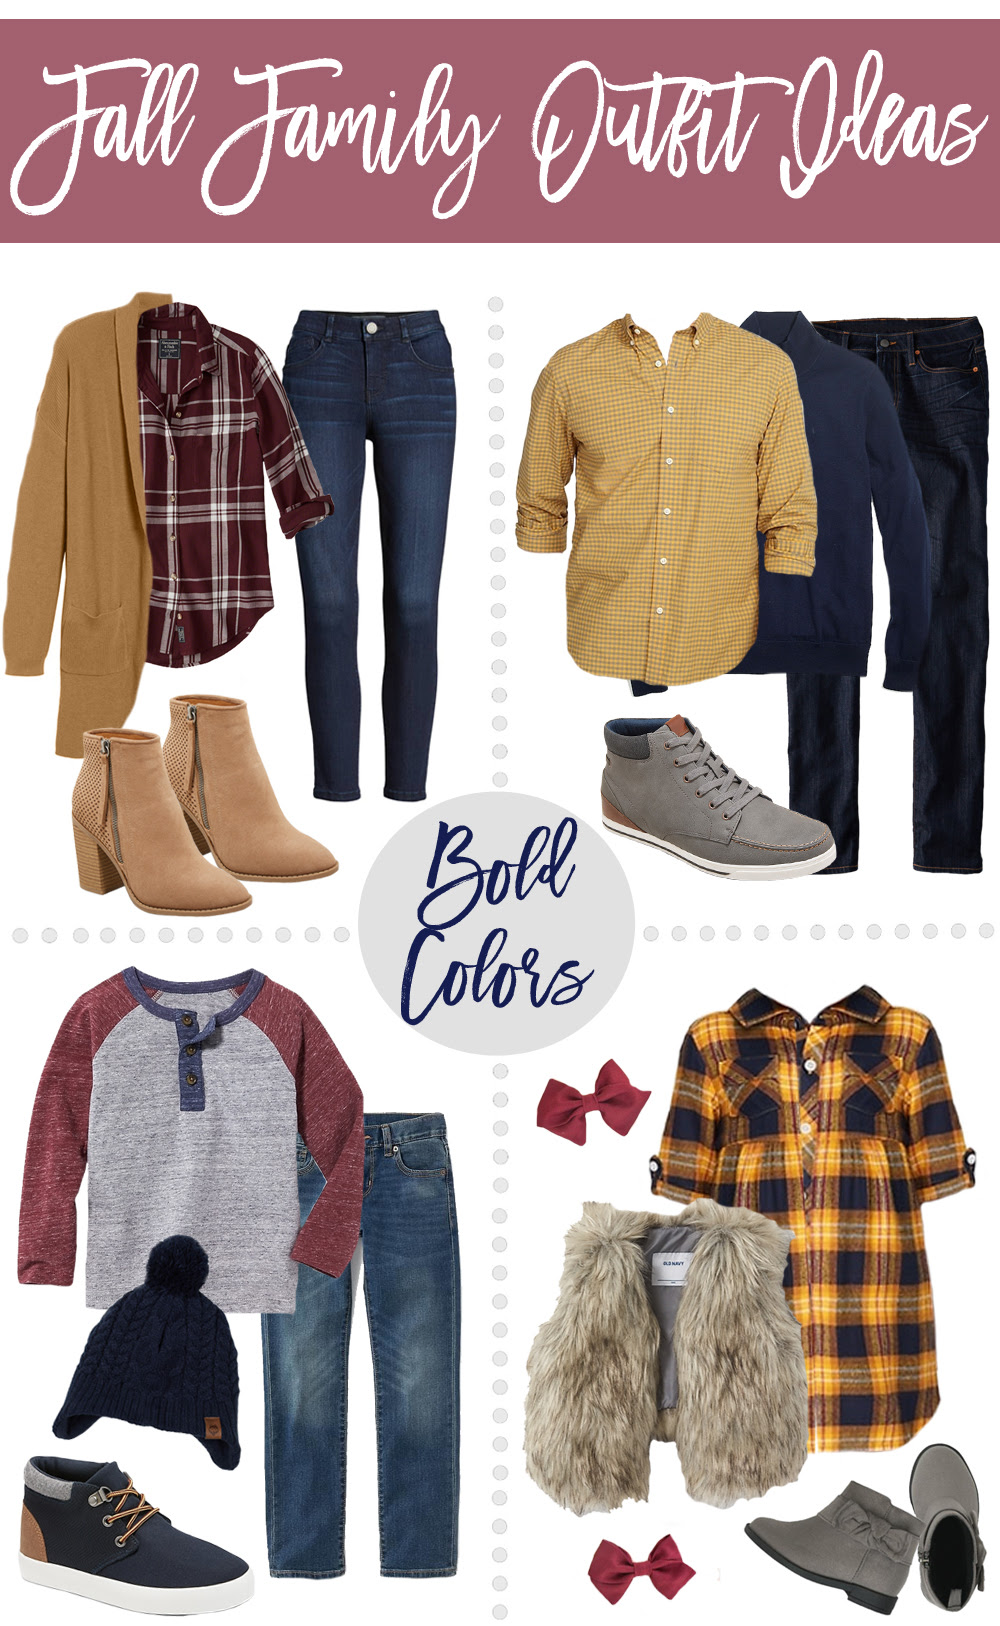 Fall Family Outfit Ideas Bold Color Neutral Color Options